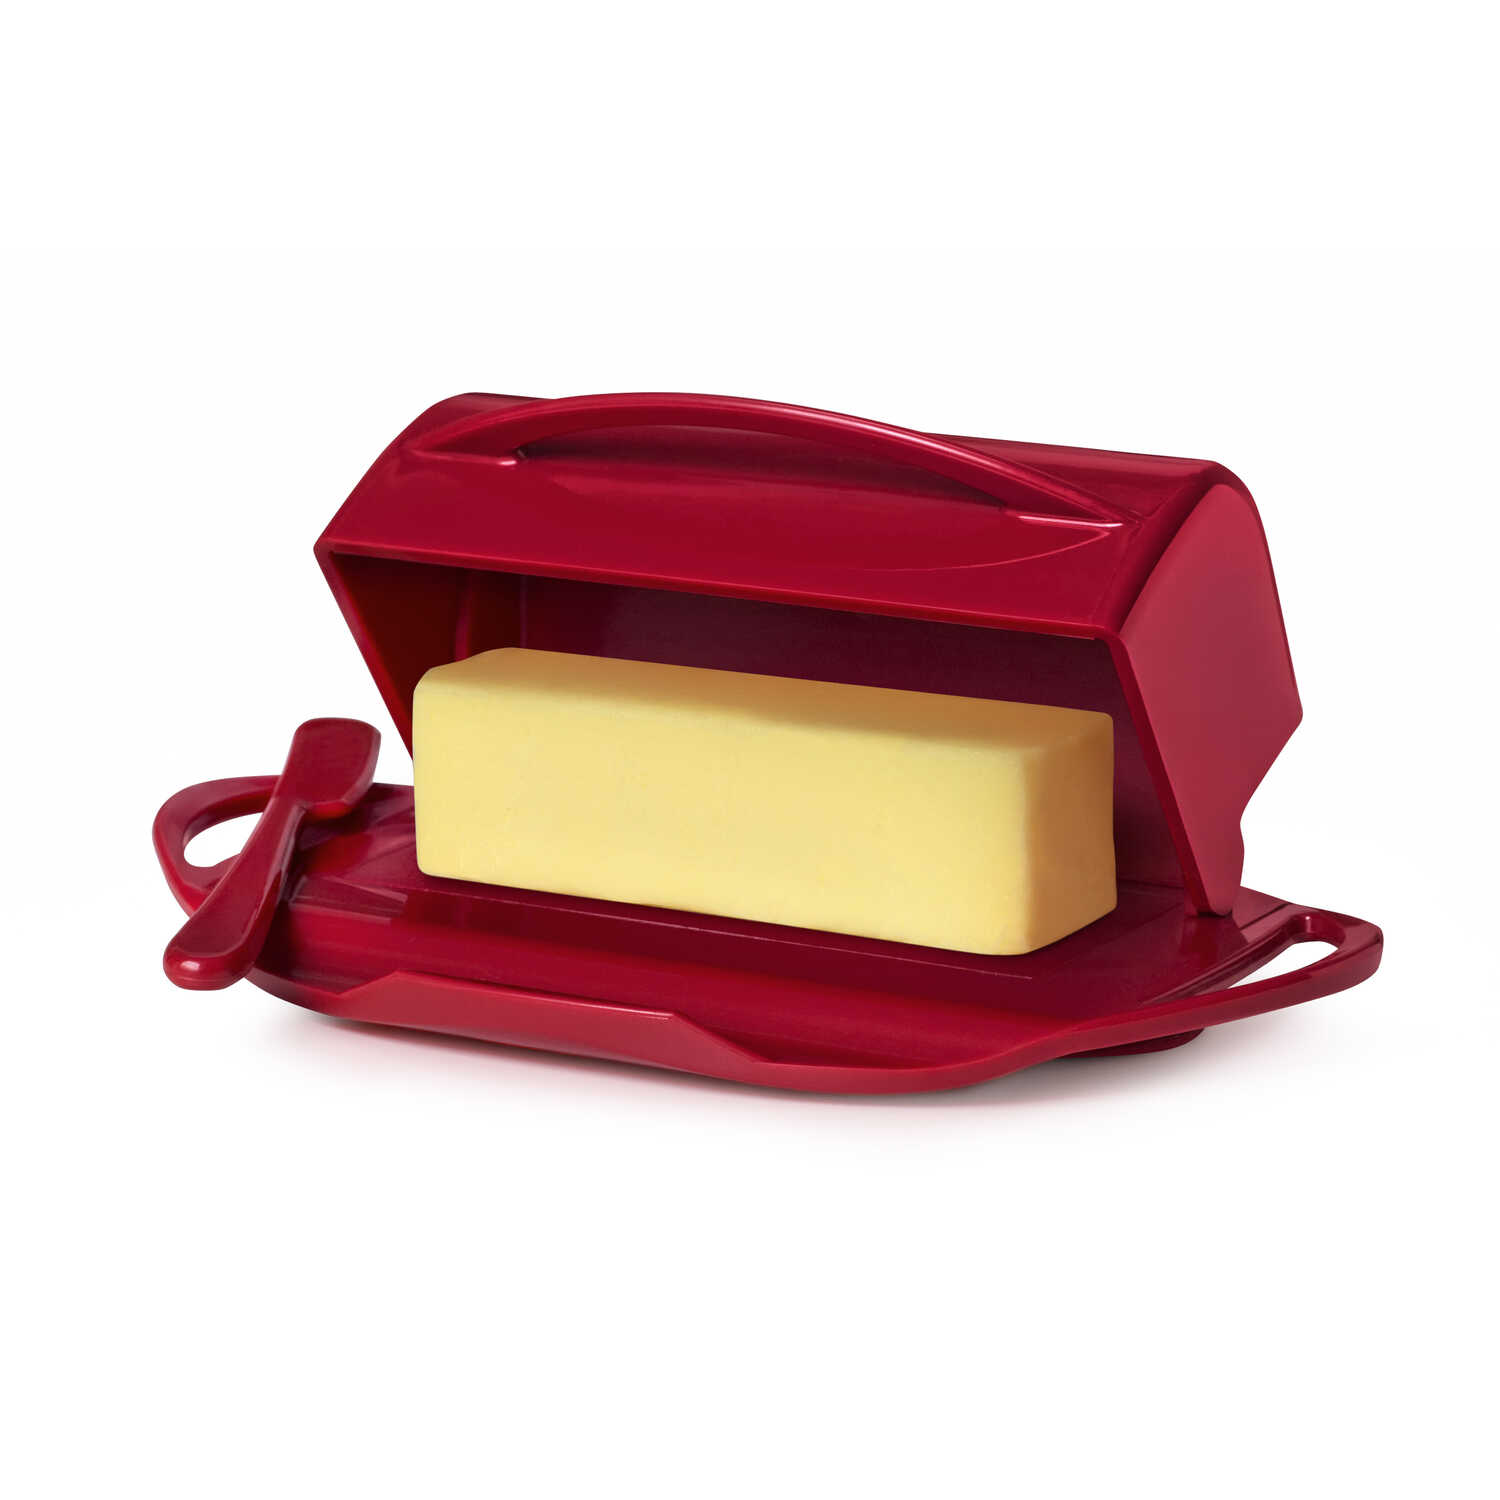 Butterie  5.5 in. W x 9 in. L Red  Plastic  Butter Dish